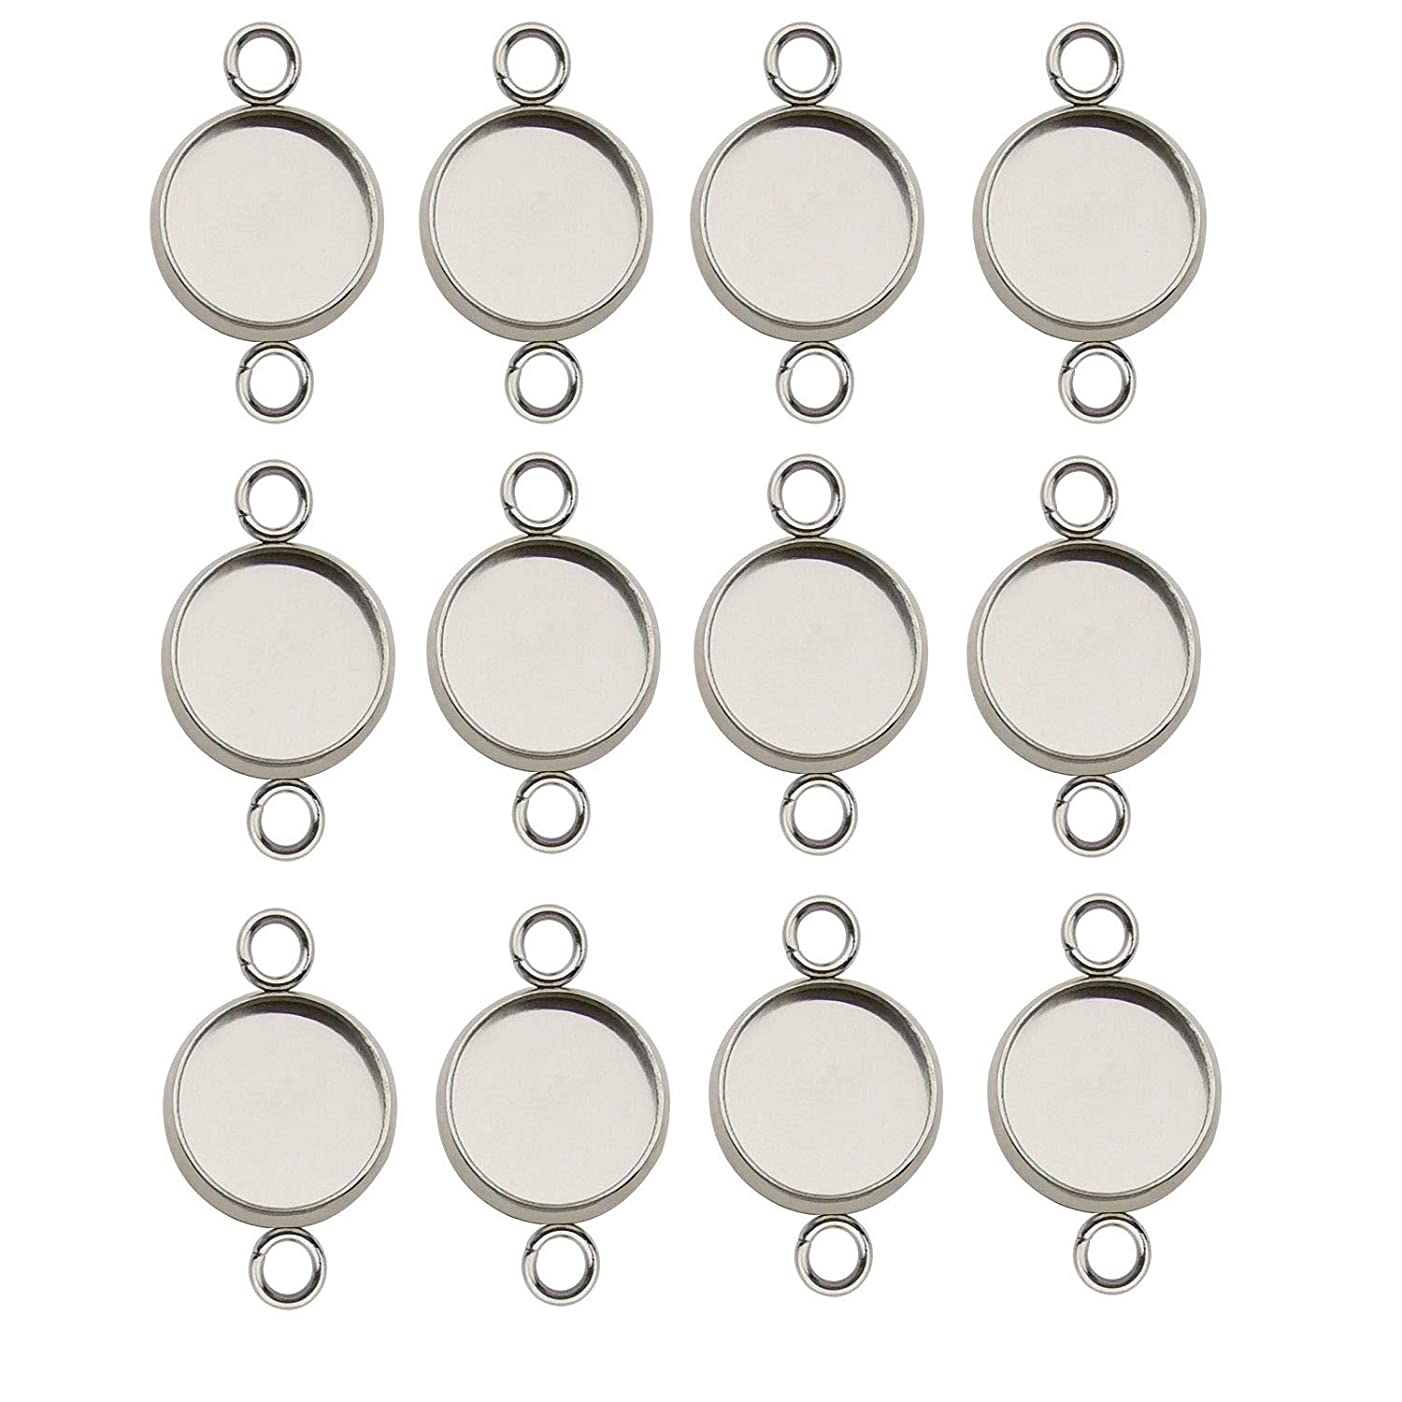 50pcs 10mm Stainless Steel Round Blank Bezel Pendant Connector Trays Base Cabochon Settings Trays Pendant Blanks Links for Jewelry Making DIY Findings (9843)